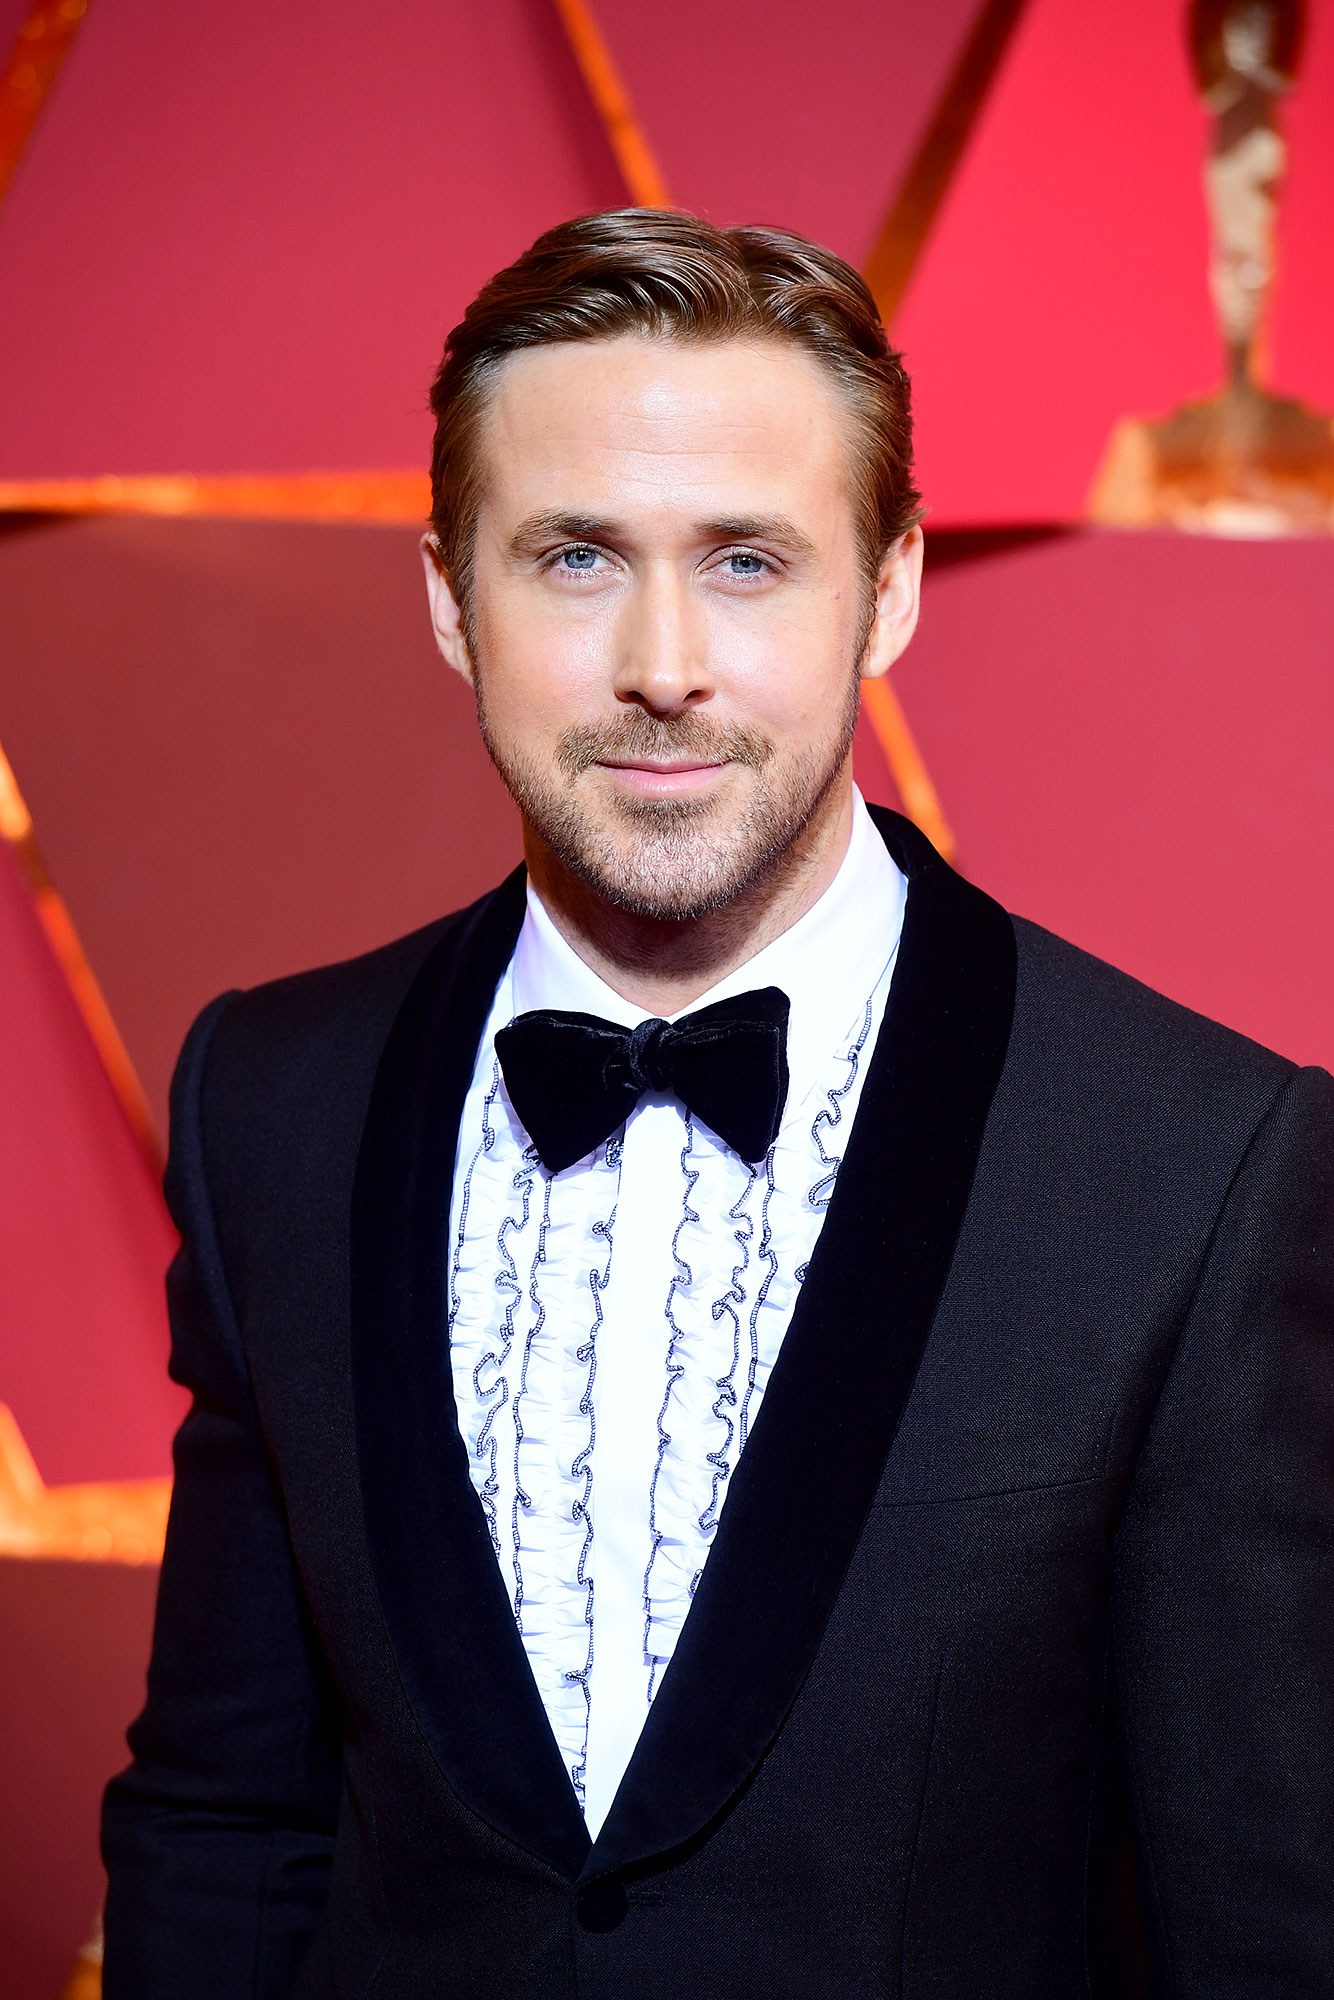 Ryan Gosling - Stars Who Have Never Won Oscars - Gosling was robbed of his would-be Oscar in 2017, when he (and the rest of the cast of La La Land ) was announced as the Best Picture winner, only to find that announcers Warren Beatty and Faye Dunaway had been given the wrong cue card : The real winner was Moonlight . The First Man star was also snubbed for Best Actor that year, losing out to Manchester by the Sea 's Casey Affleck .